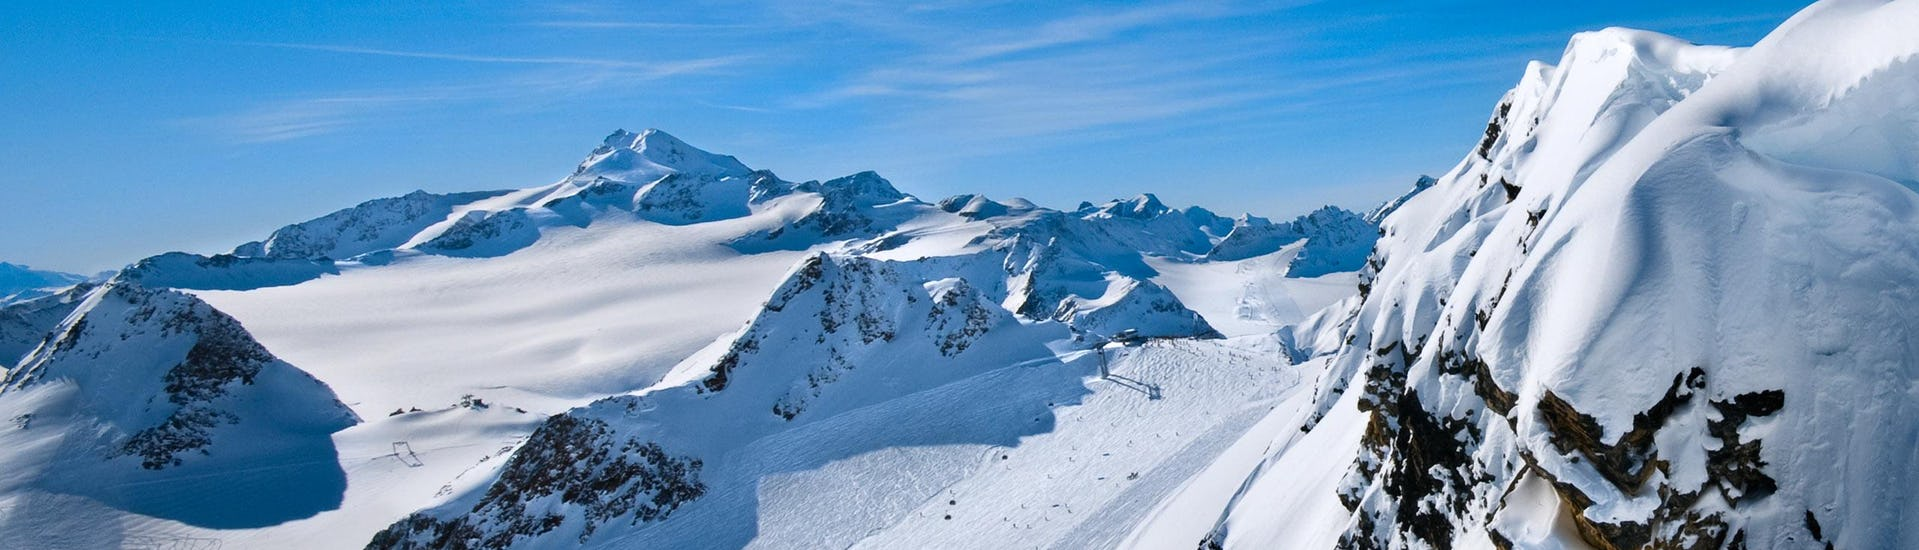 A view of a snowy mountain top in the ski resort of St-Luc, where ski schools gather to start their ski lessons.